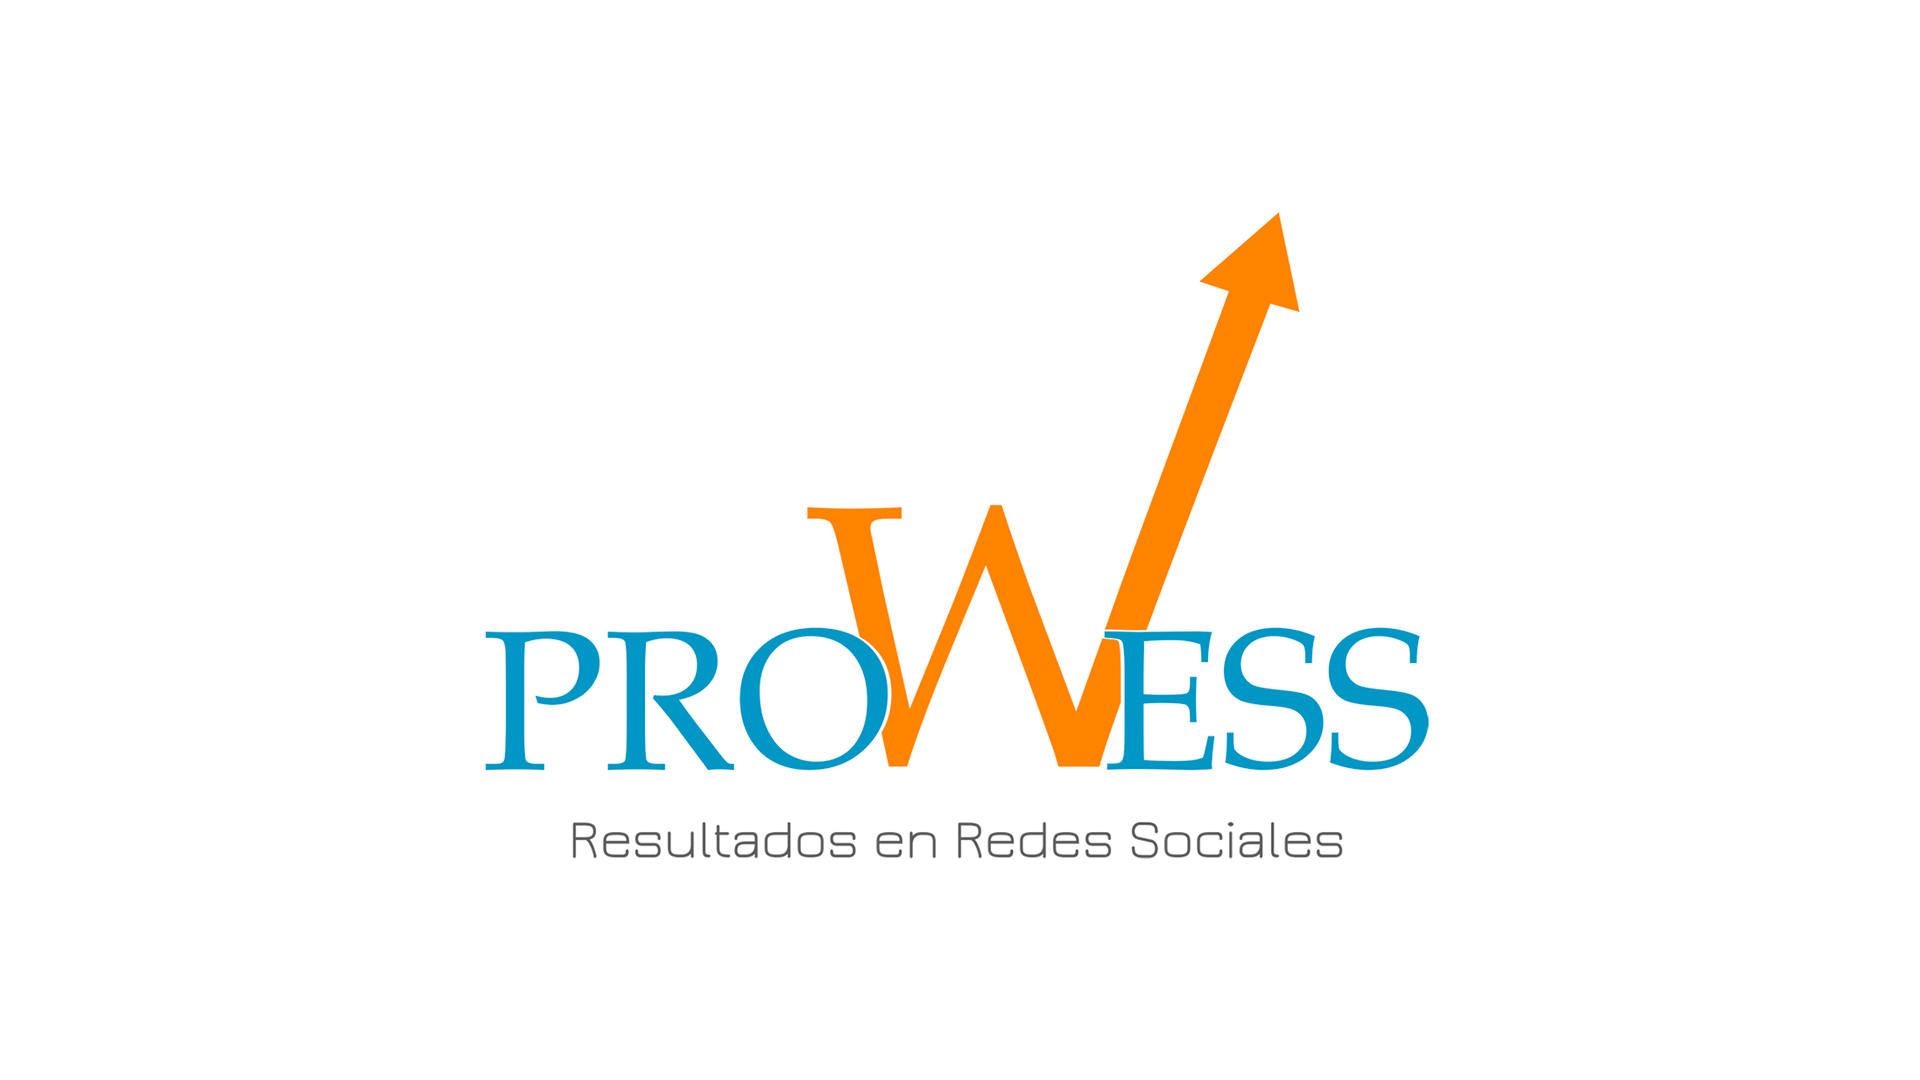 Prowess brand - Identidad Prowess